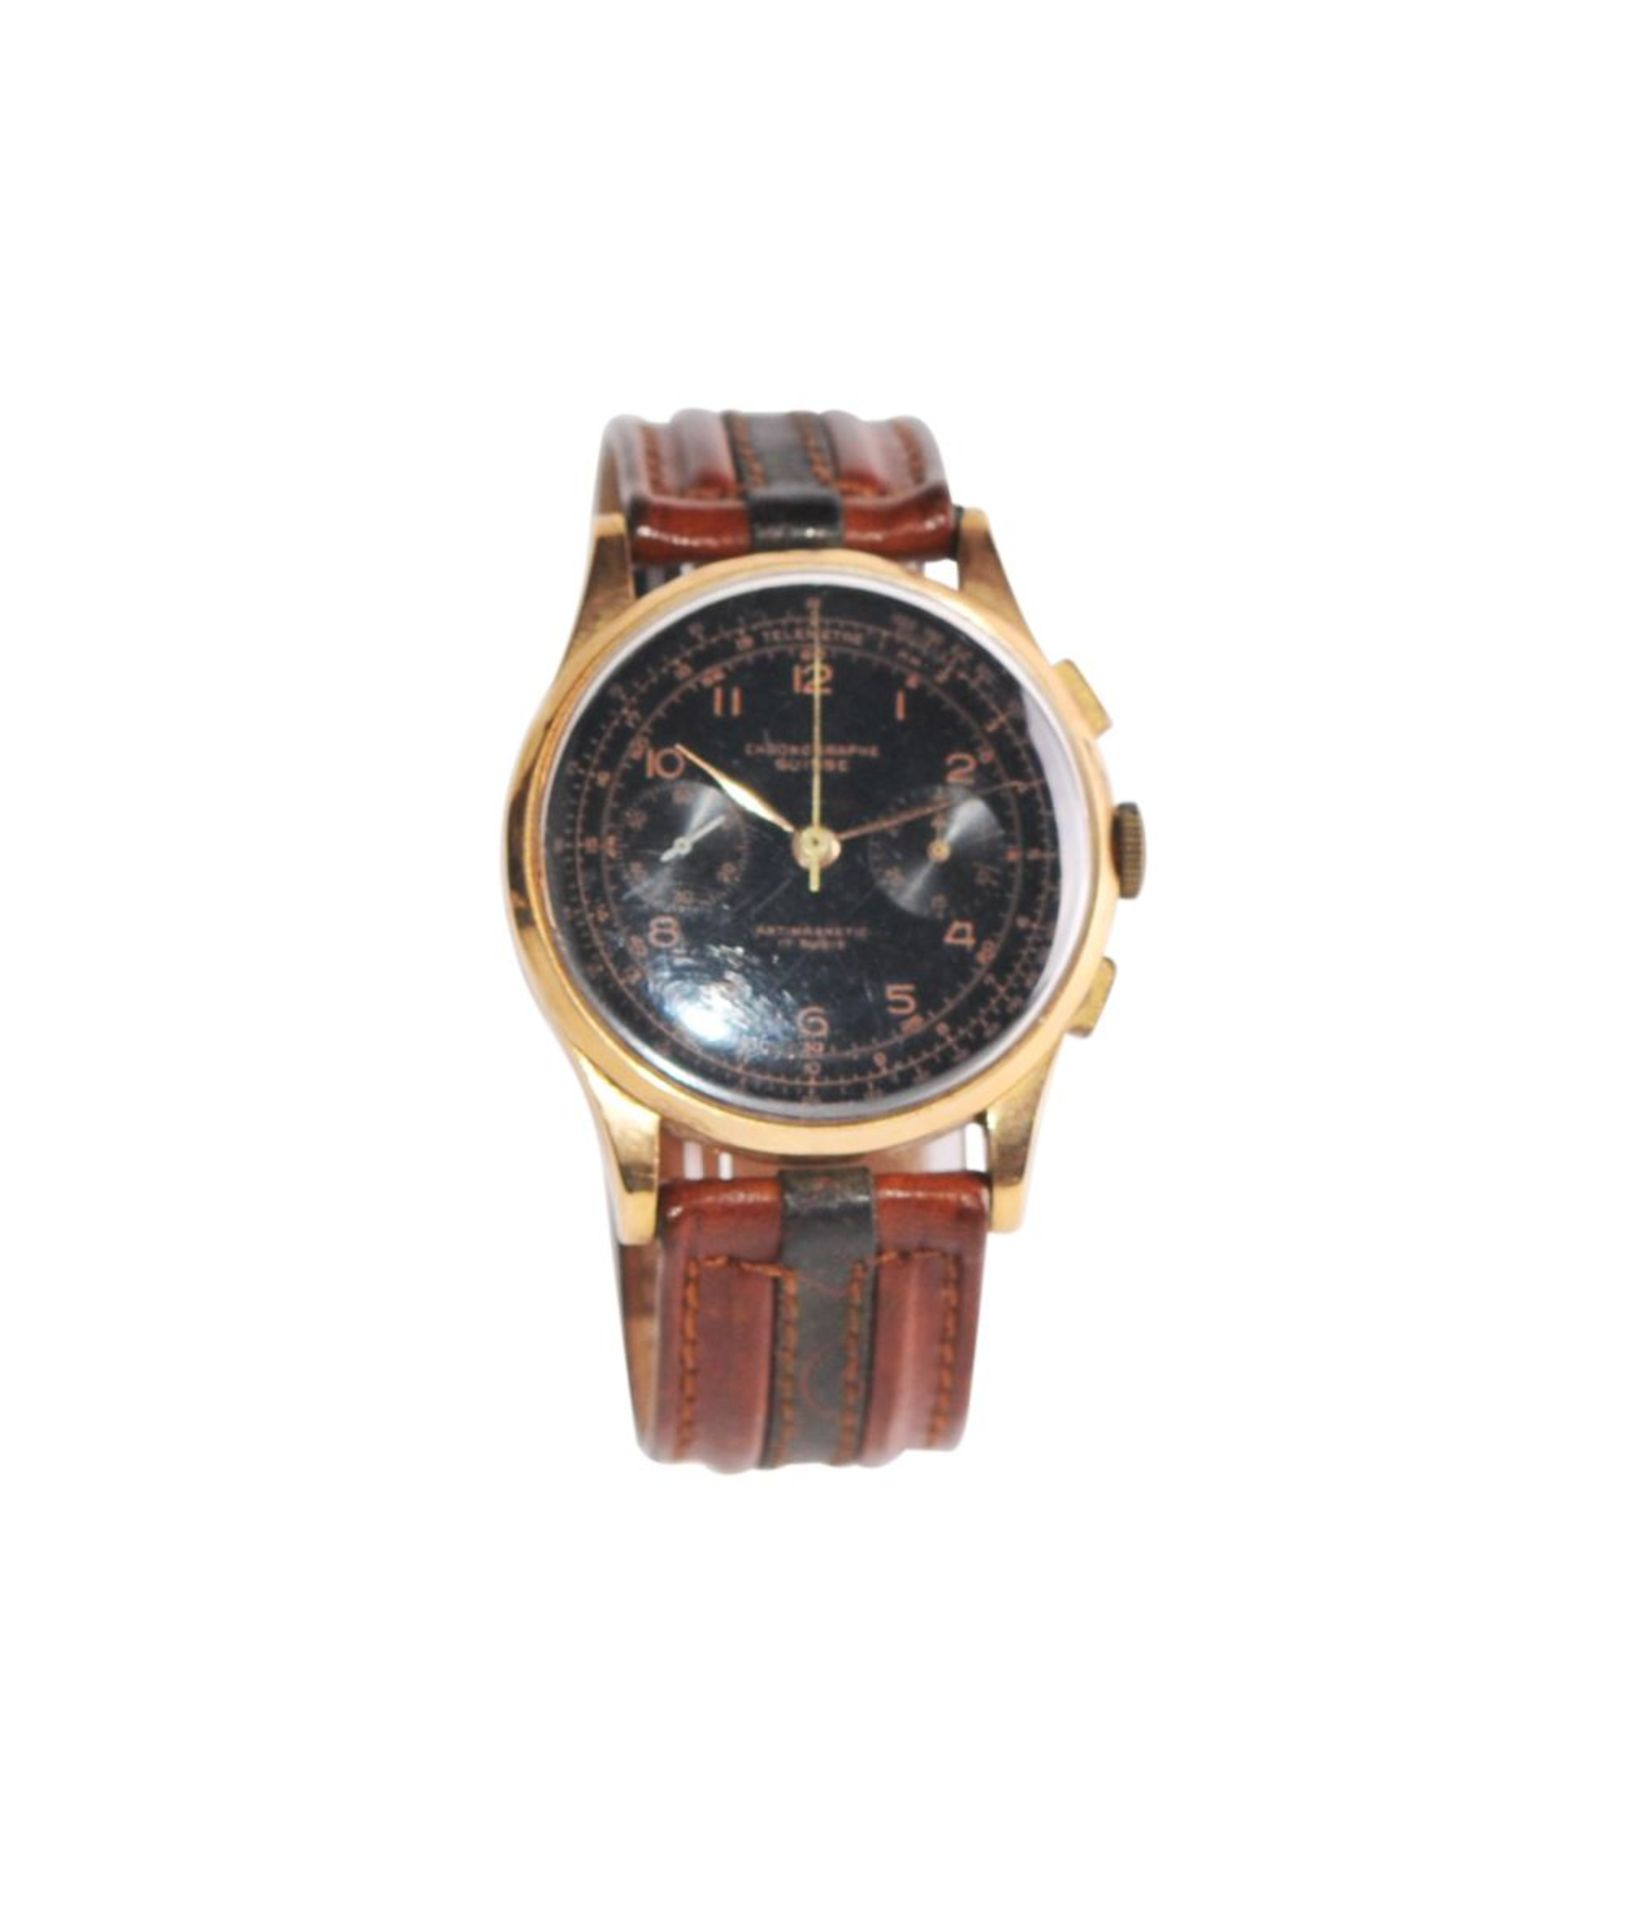 Los 18 - Chronogrape SuisseBeautiful 38 mm rose gold watch with Chronograph Suisse on leather